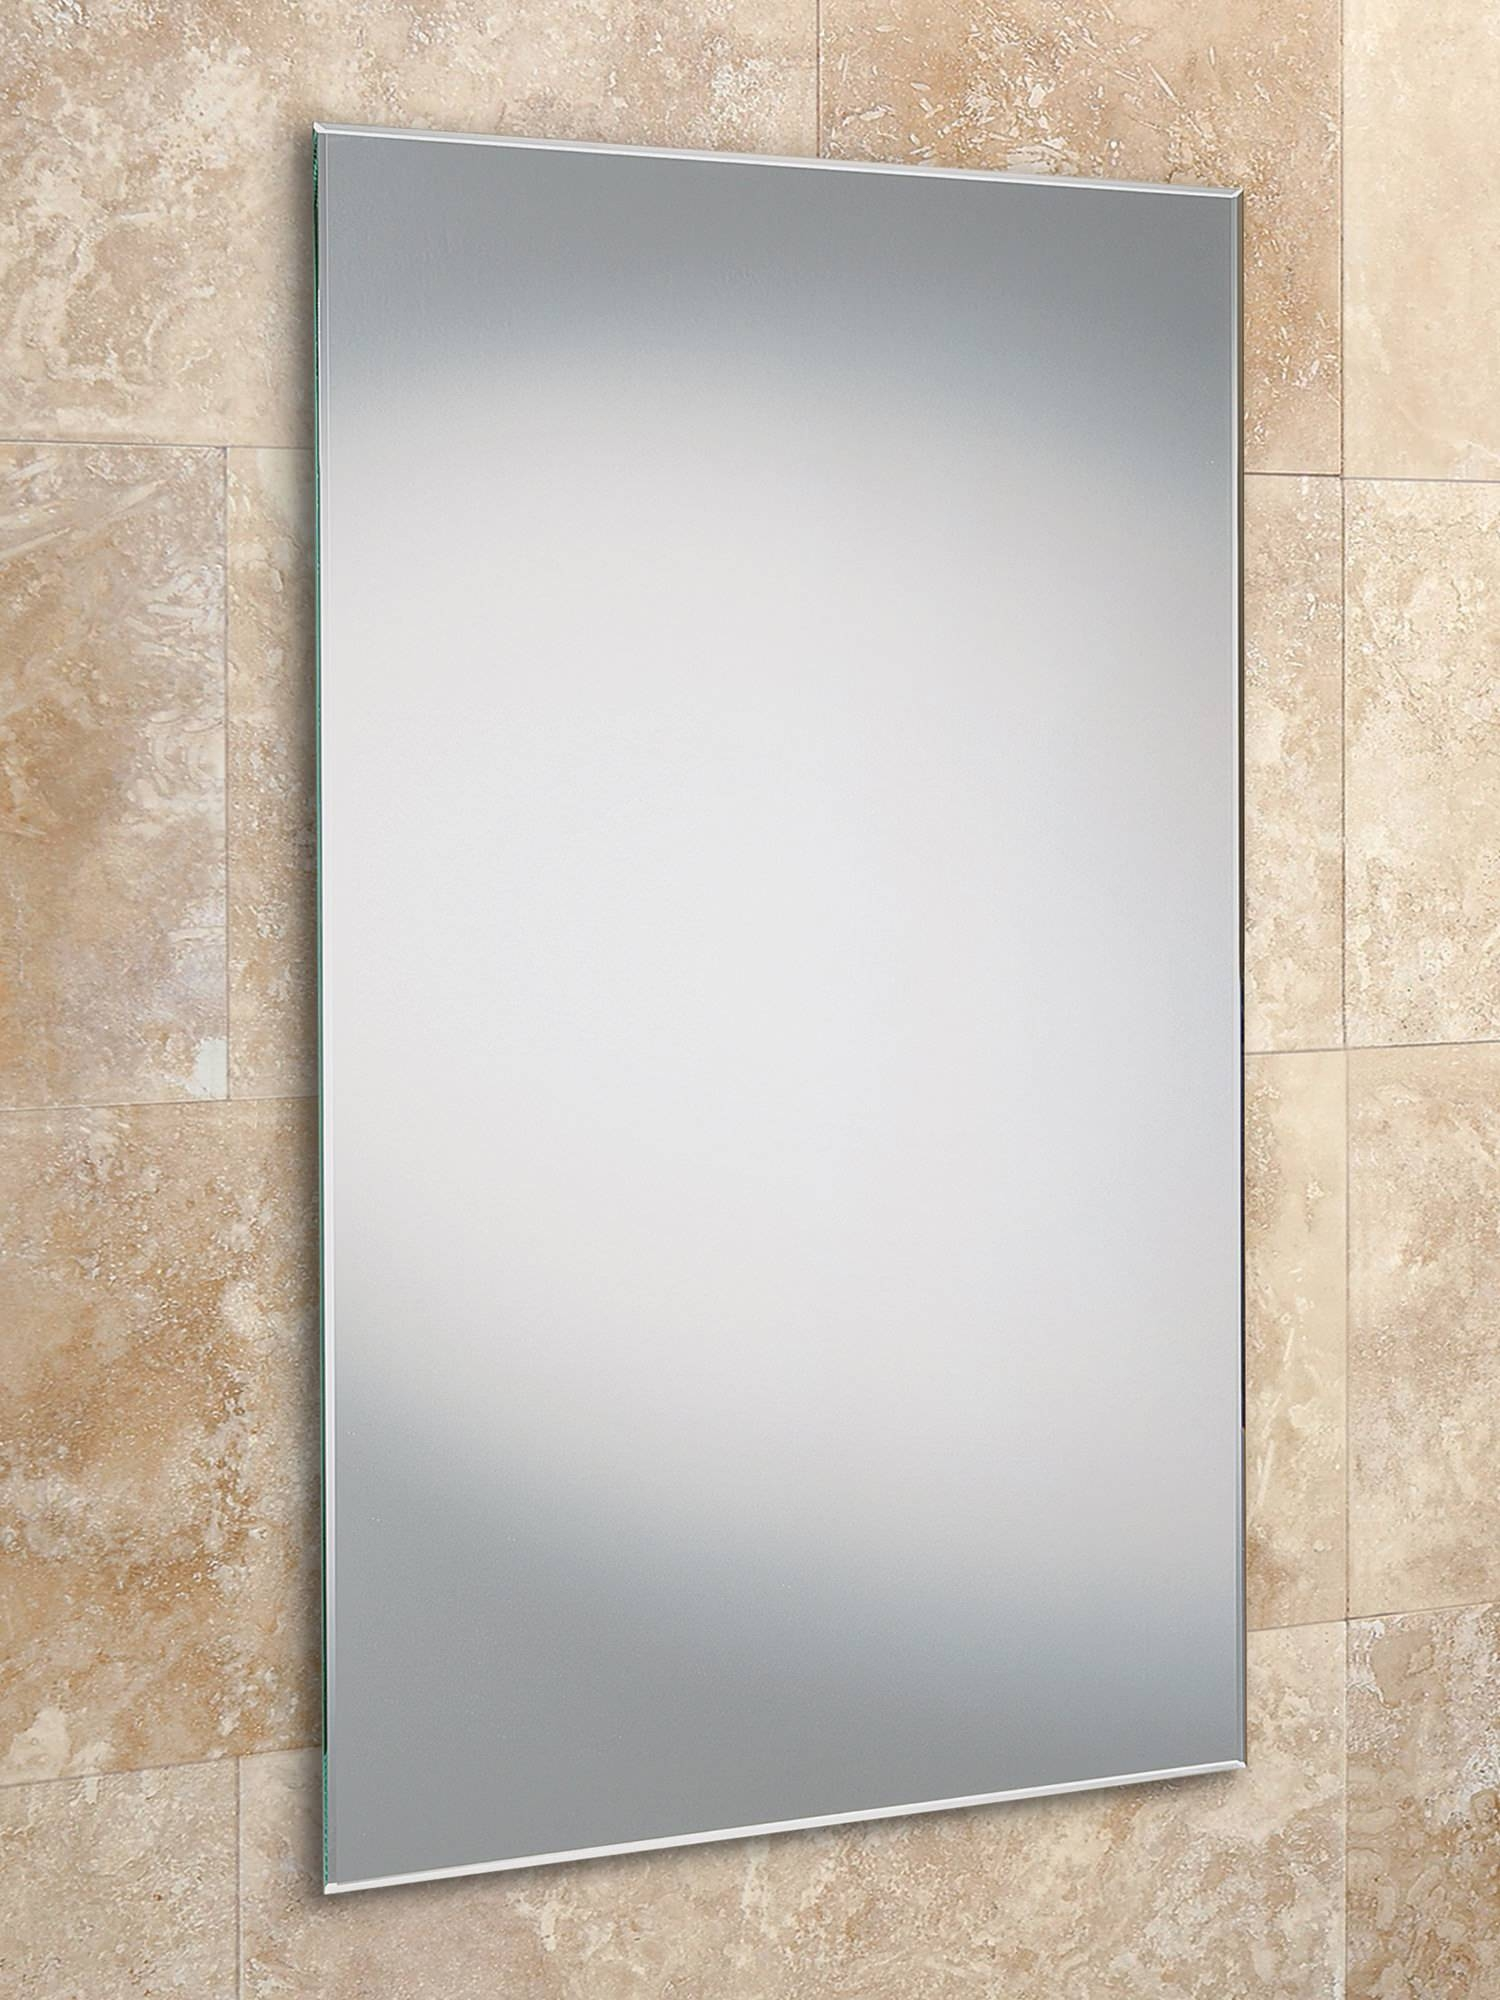 Contemporary Standard Mirrors For Bathrooms - Qs Supplies regarding Bevel Edged Mirrors (Image 6 of 15)